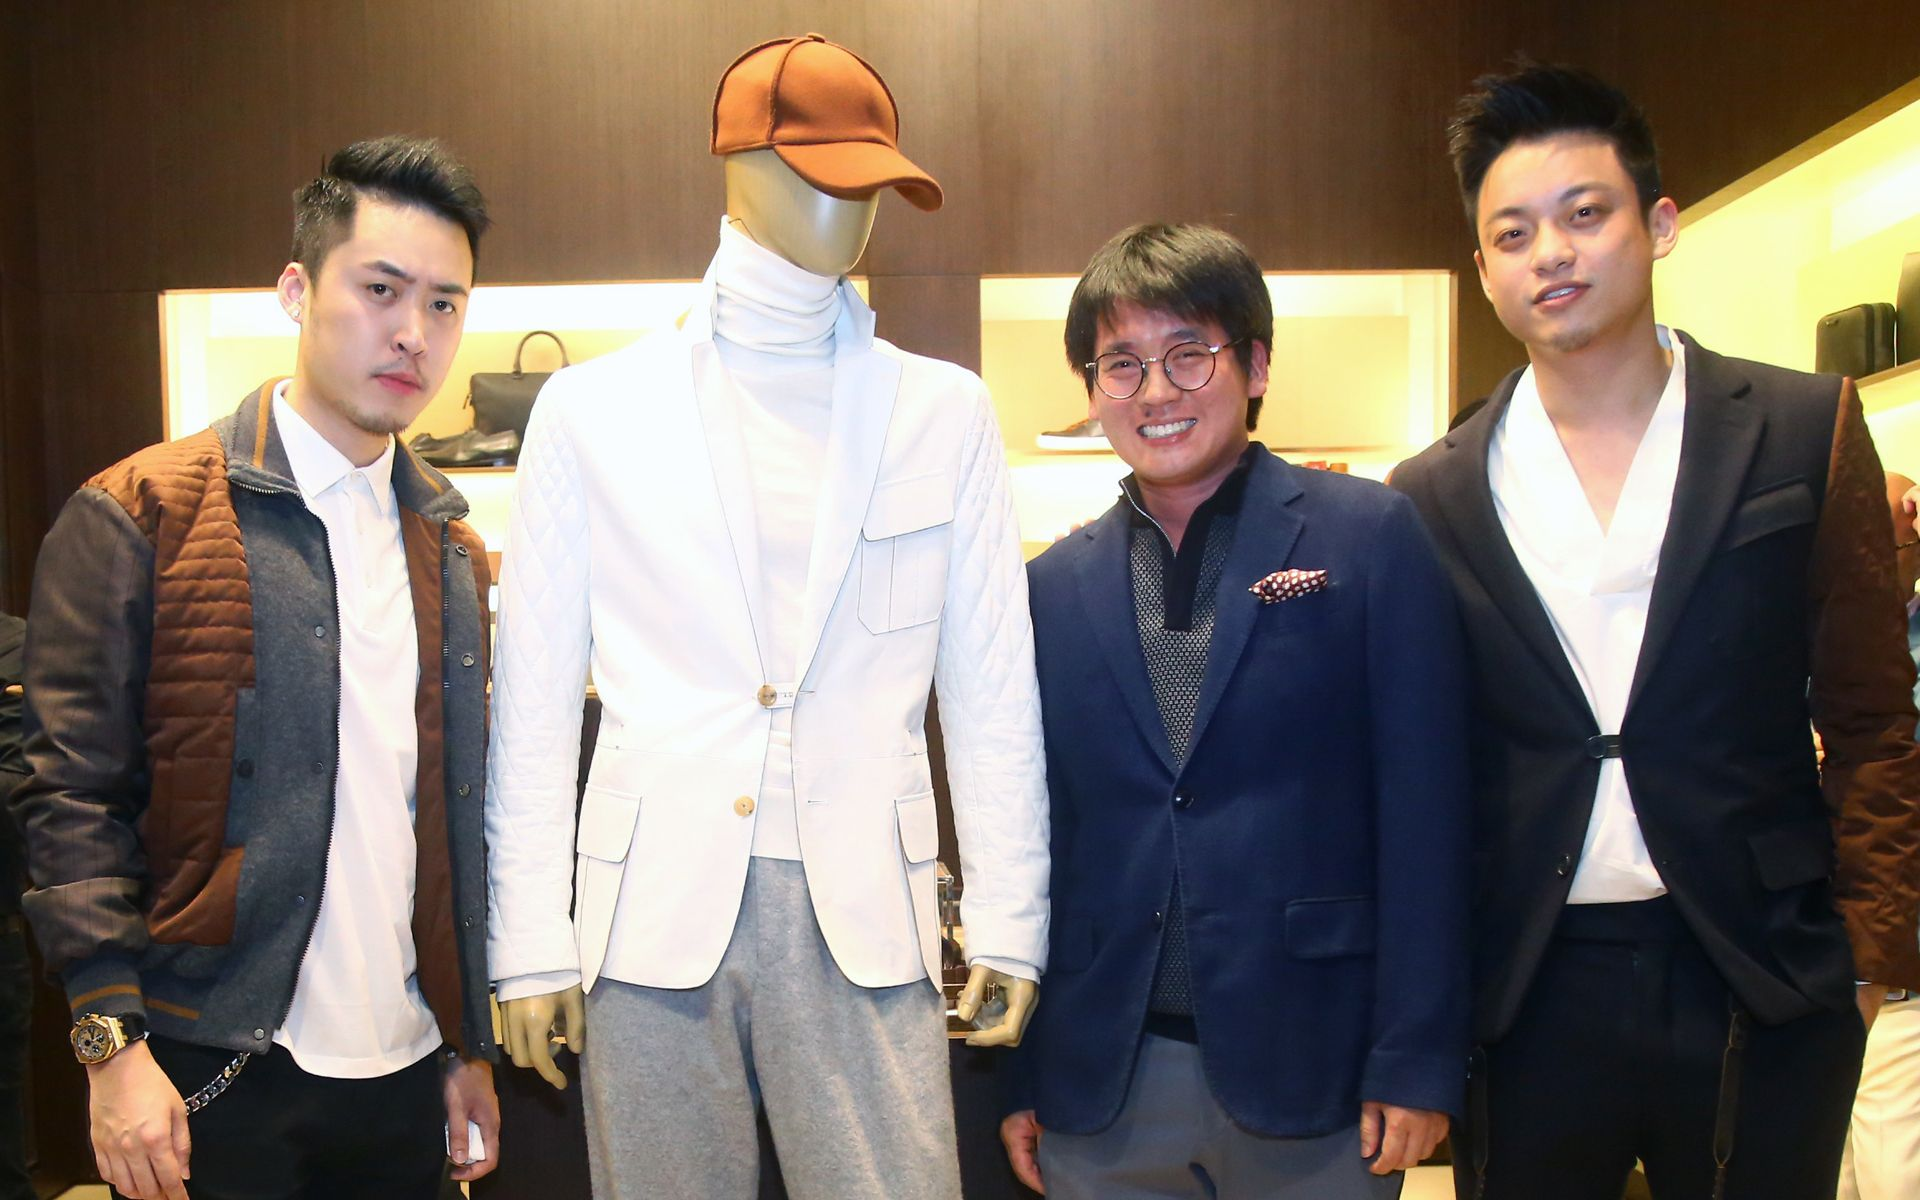 Bryan Loo, Timothy Tiah and Jayden Liew in Ermenegildo Zegna suits